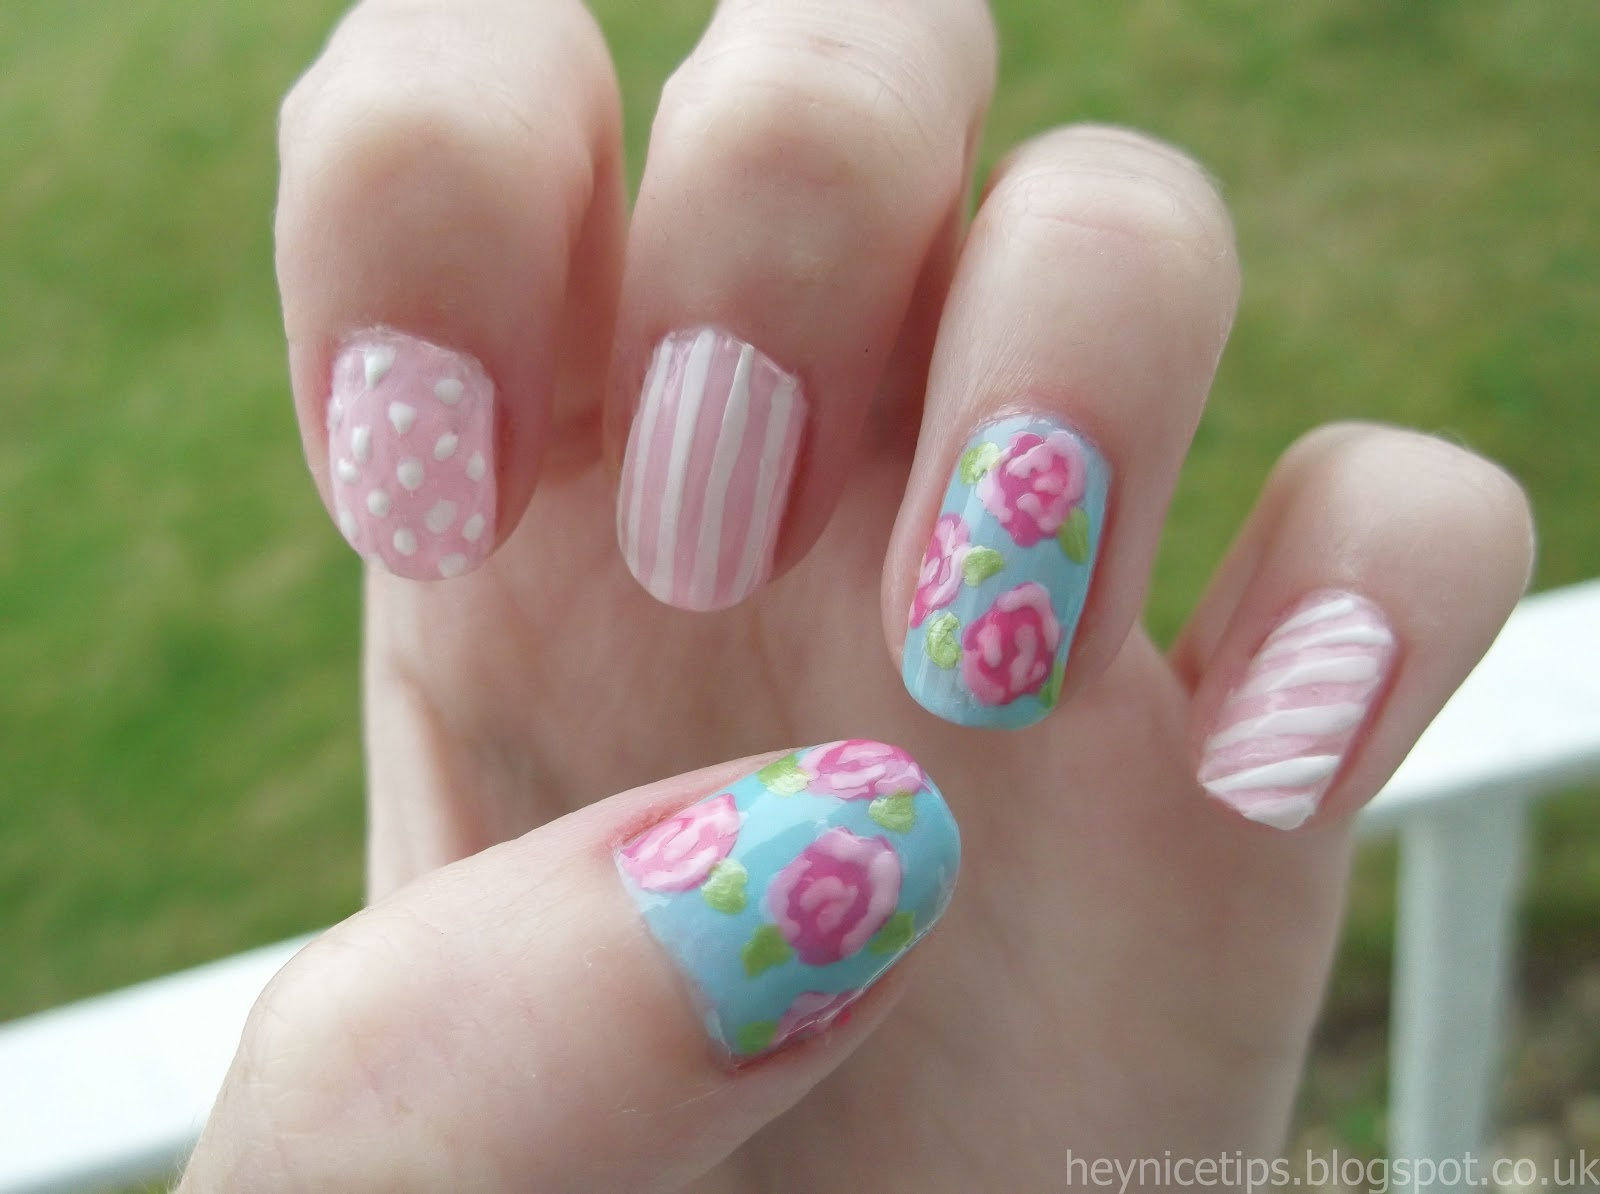 And this is the finished shabby chic/vintage rose nail art design :)